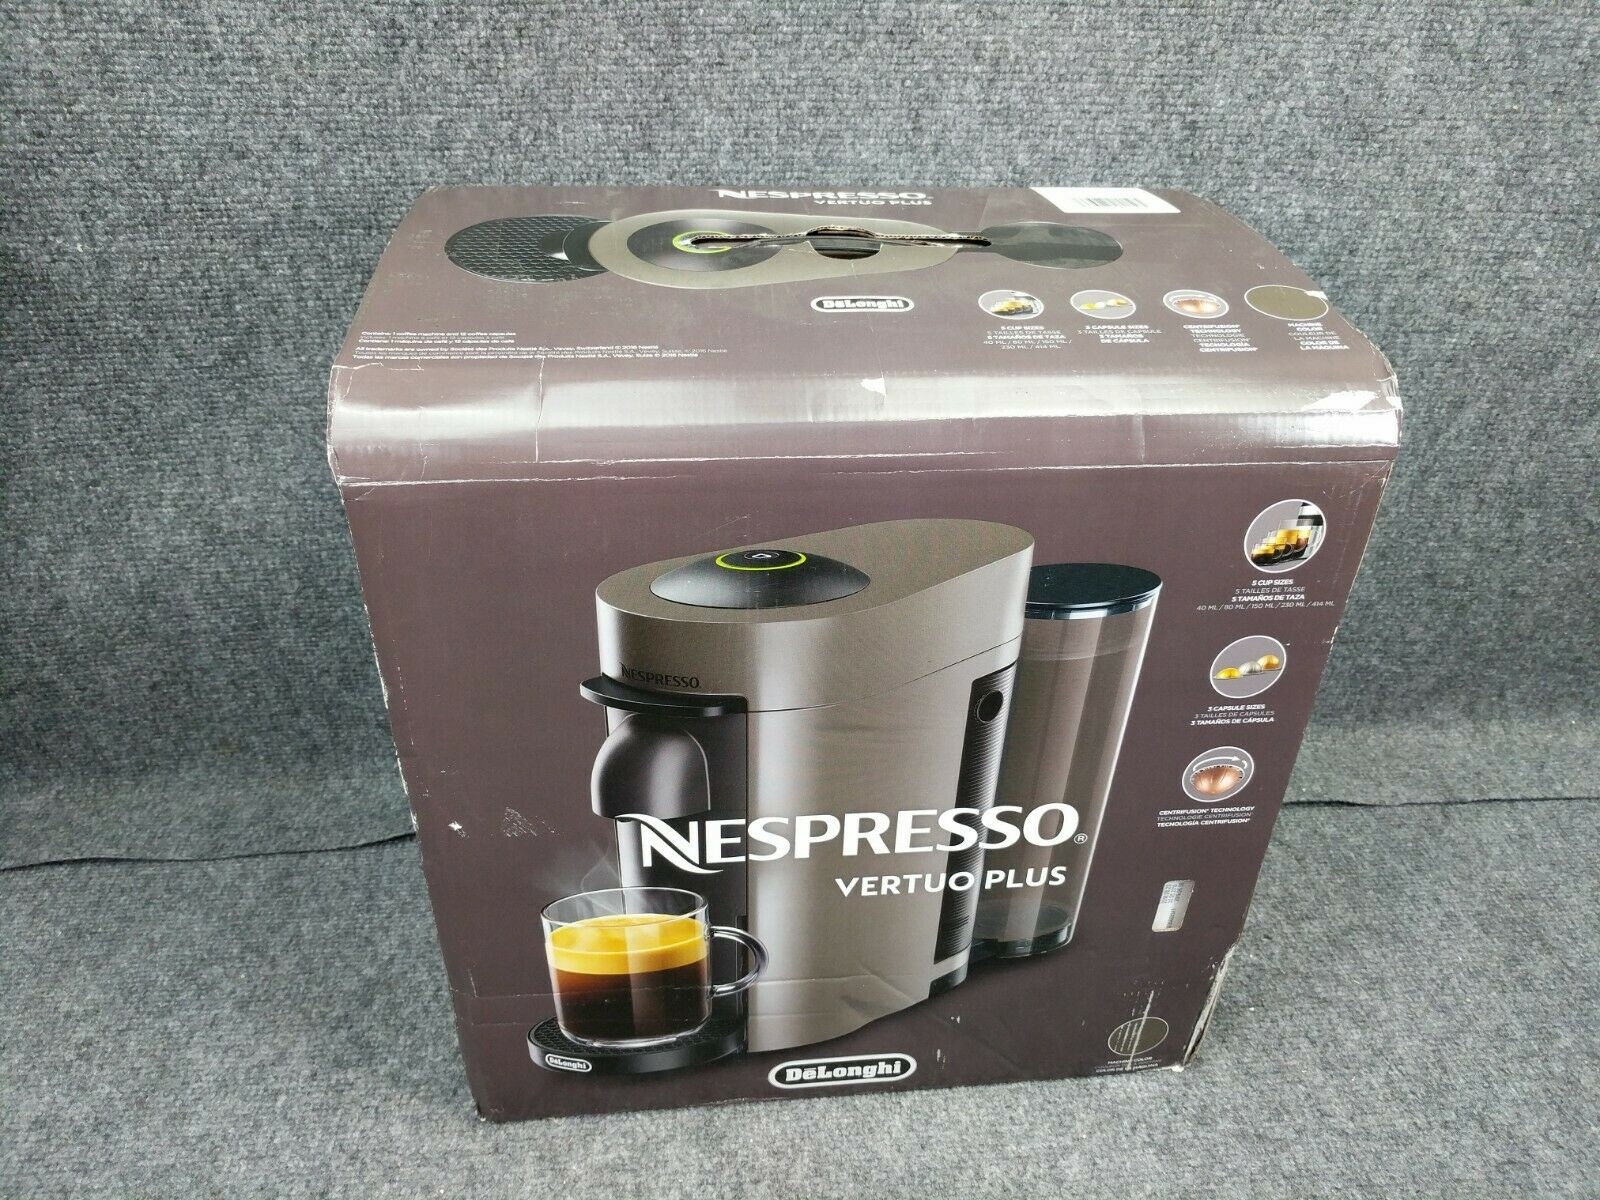 Nespresso Vertuoplus Coffee Espresso Machine Delonghi ENV150